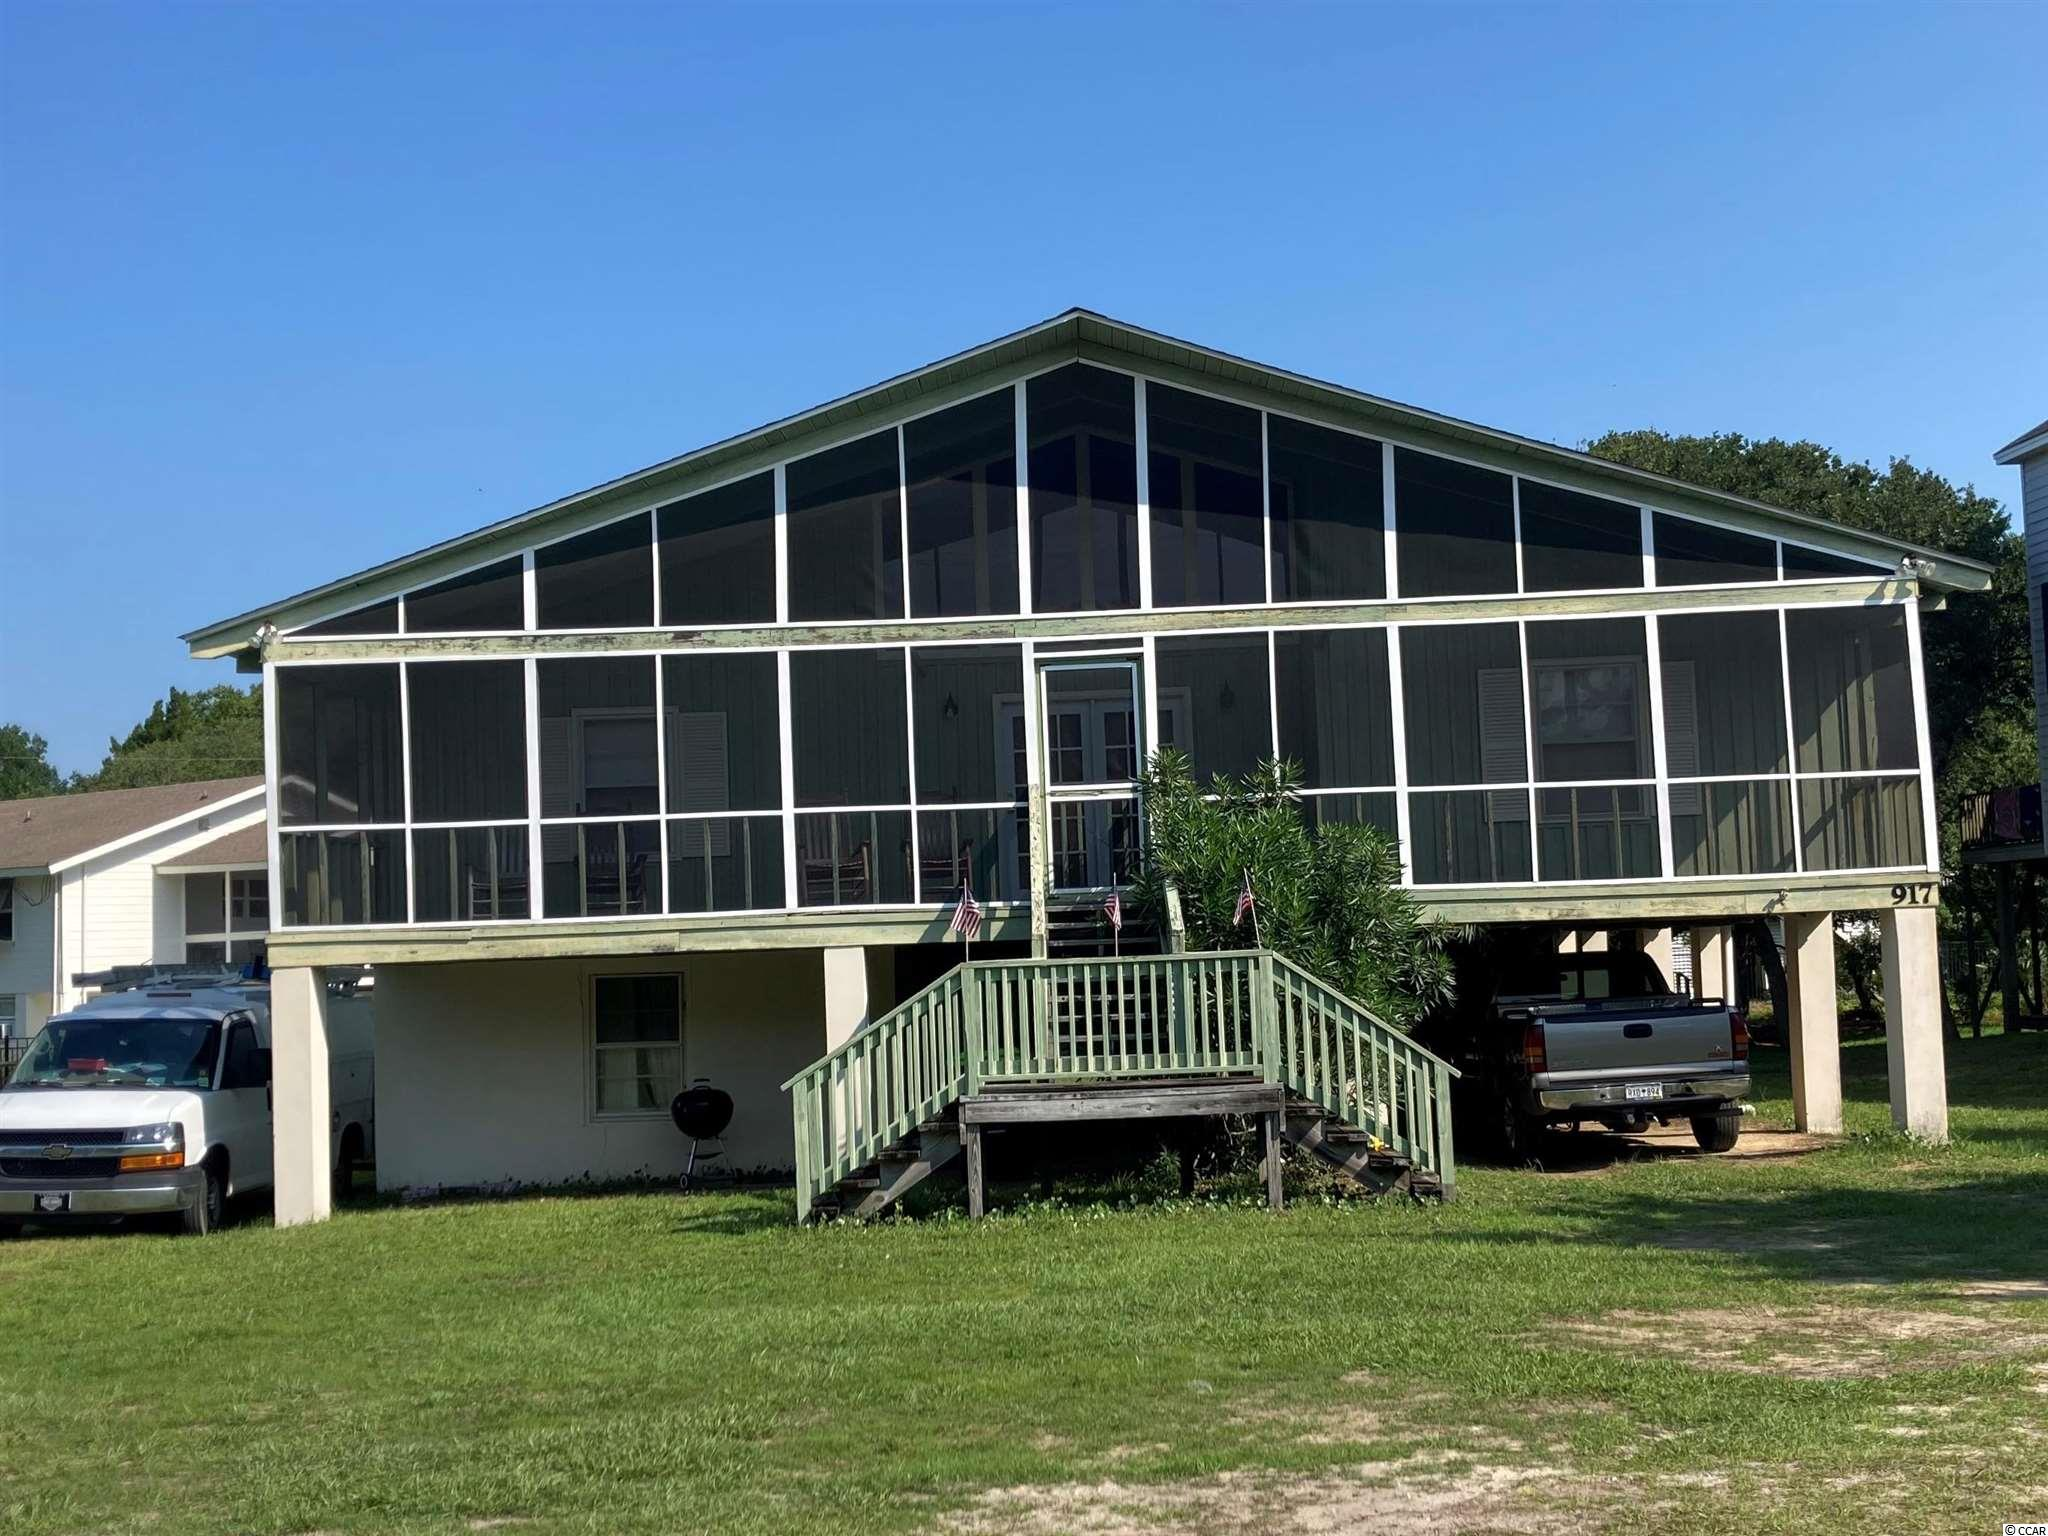 """Loving this charming, raised beach home steps away from the water in this North Litchfield Beach community. Open concept living and dining room. Very spacious, with a vast screened in porch to enjoy your early morning coffee while the sun comes up and just as amazing relaxing at the end of the day as the sun goes down. The """"Sawmill House"""" was built by a Georgetown family that owned timber land and a sawmill. The lumber and timber were selected and milled at the family's sawmill. Great bones, level floors, beautiful cathedral ceilings, Roof 2020, HVAC 2018, New mattresses 2020, New flooring 2020, furniture stays. Call for an appointment and make this beach home yours today!"""